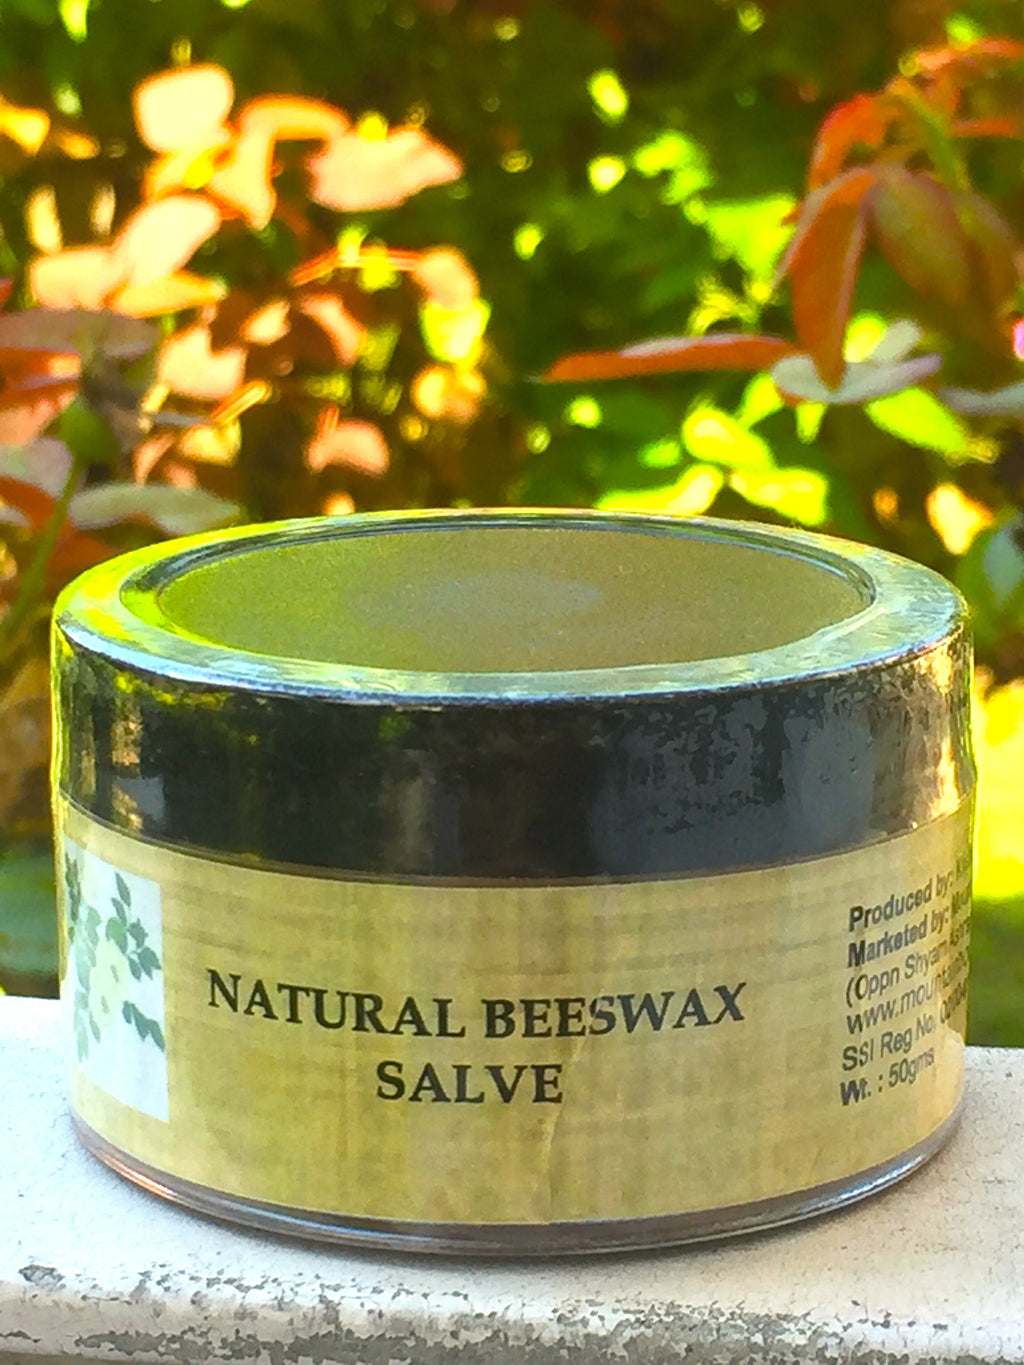 Beeswax Lip Balm, Handmade, 100% Natural, Wild Peach oil is an excellent softener and moisturizer for face, hands and hair. Well known therapeutic body massage oil. Recommended for prematurely aged, sensitive, inflamed and dry skin. Cold pressed, 100% natural, handmade, Natural oils, Skin Care, Himachal Oils, Himalayan Salt, Mountain Bounties, Himalayan people Care, Essential oils, Cold Pressed oils, Moisturising oils, Moisturising creams